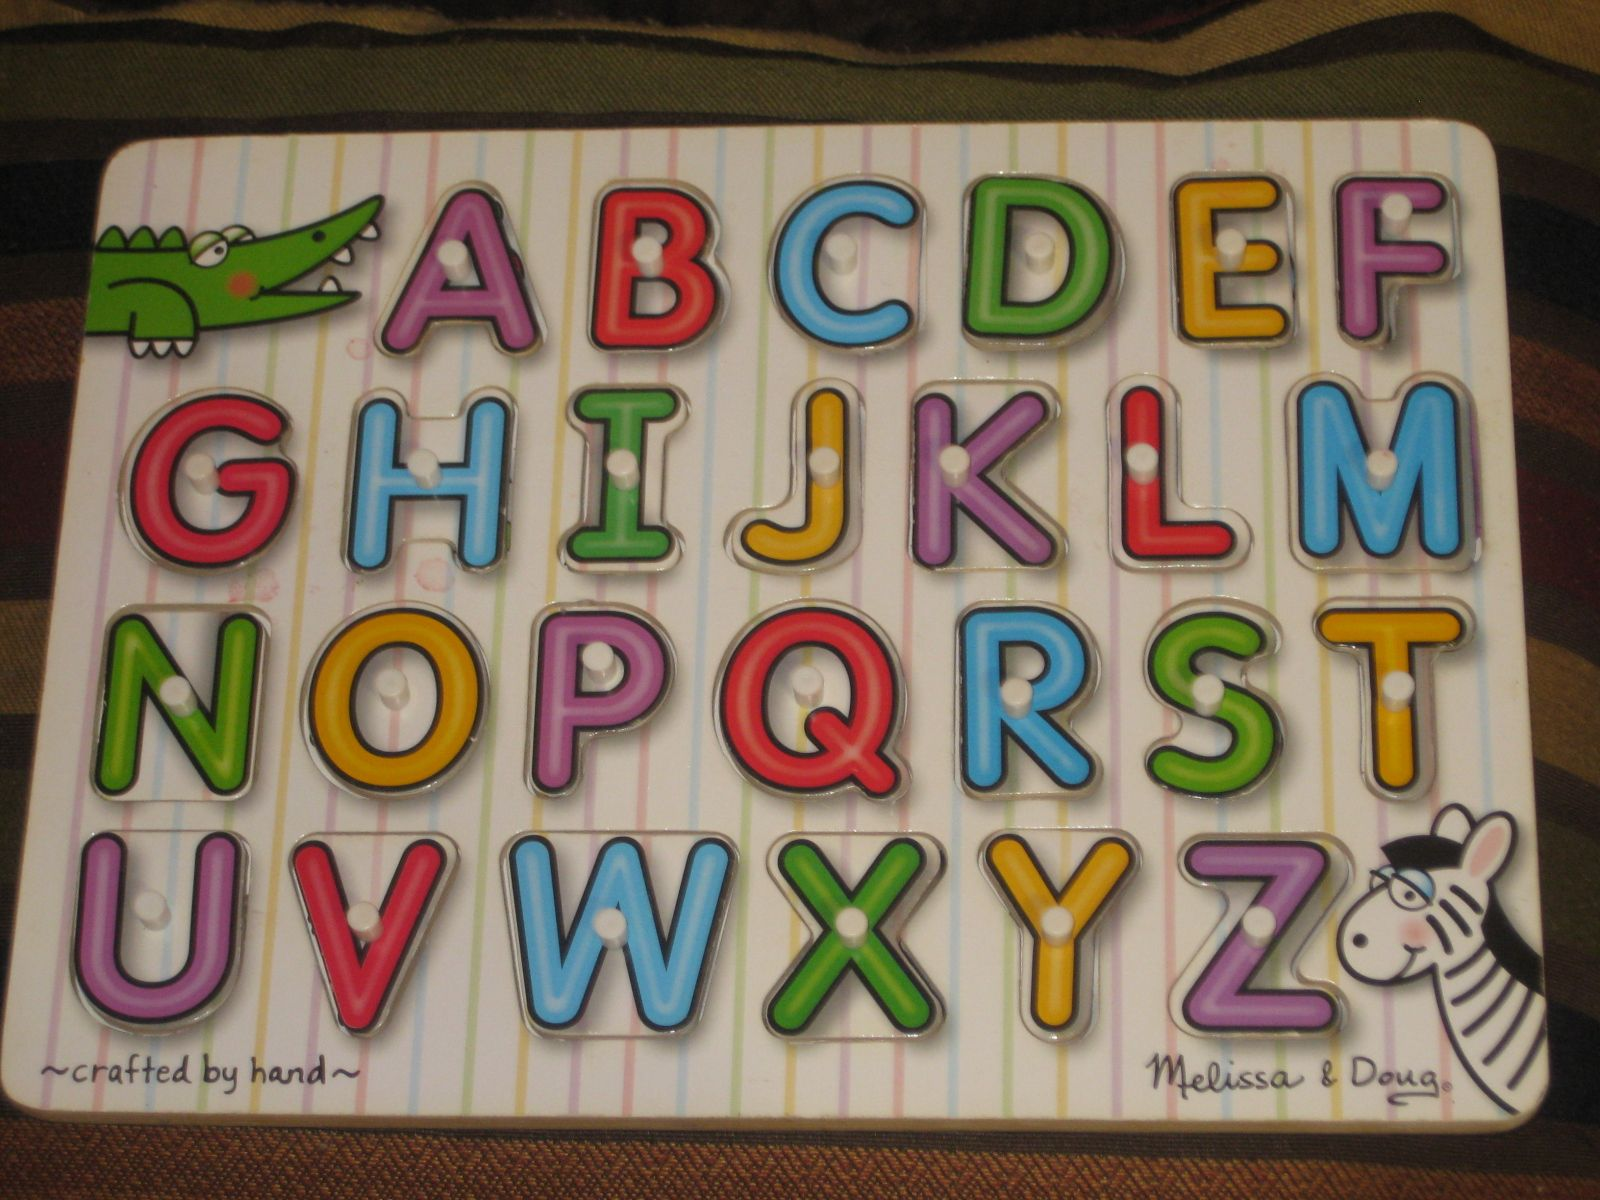 Melissa and Dough Wooden Puzzle Pieces Educational Alphabet Games